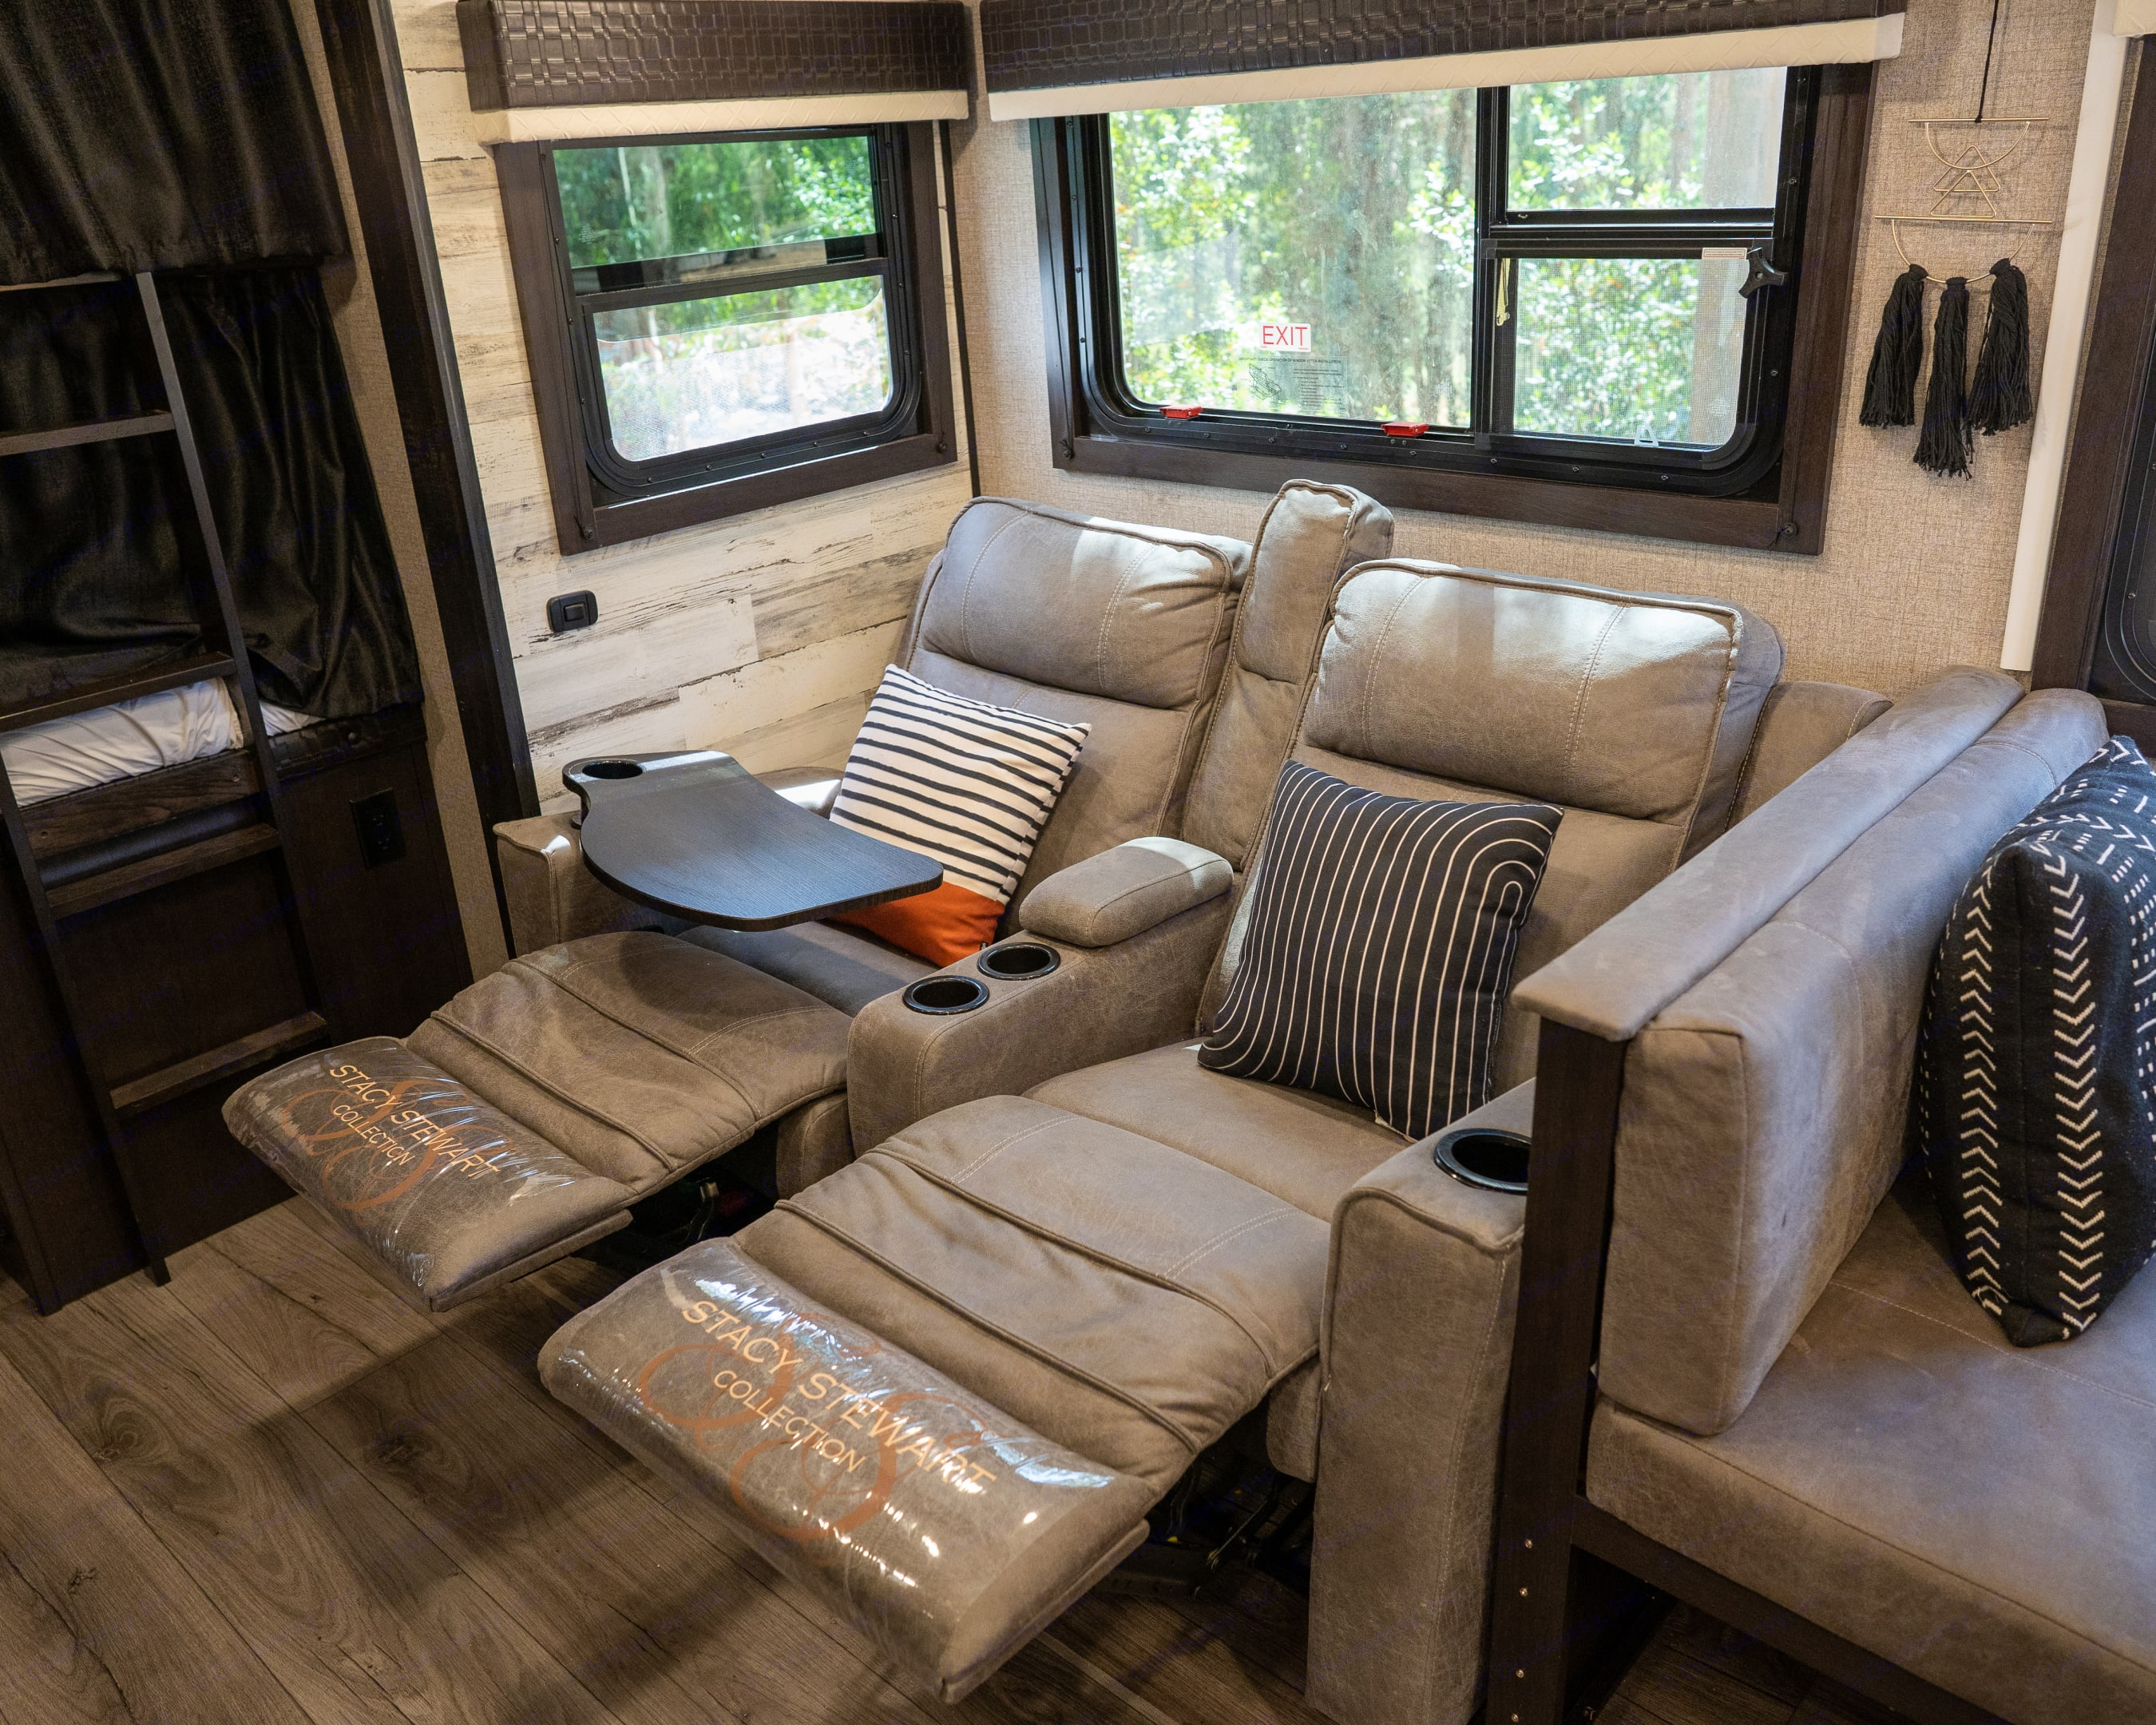 Super comfy fully reclining theater chairs with TV dinner trays . Jayco Jay Feather 2021